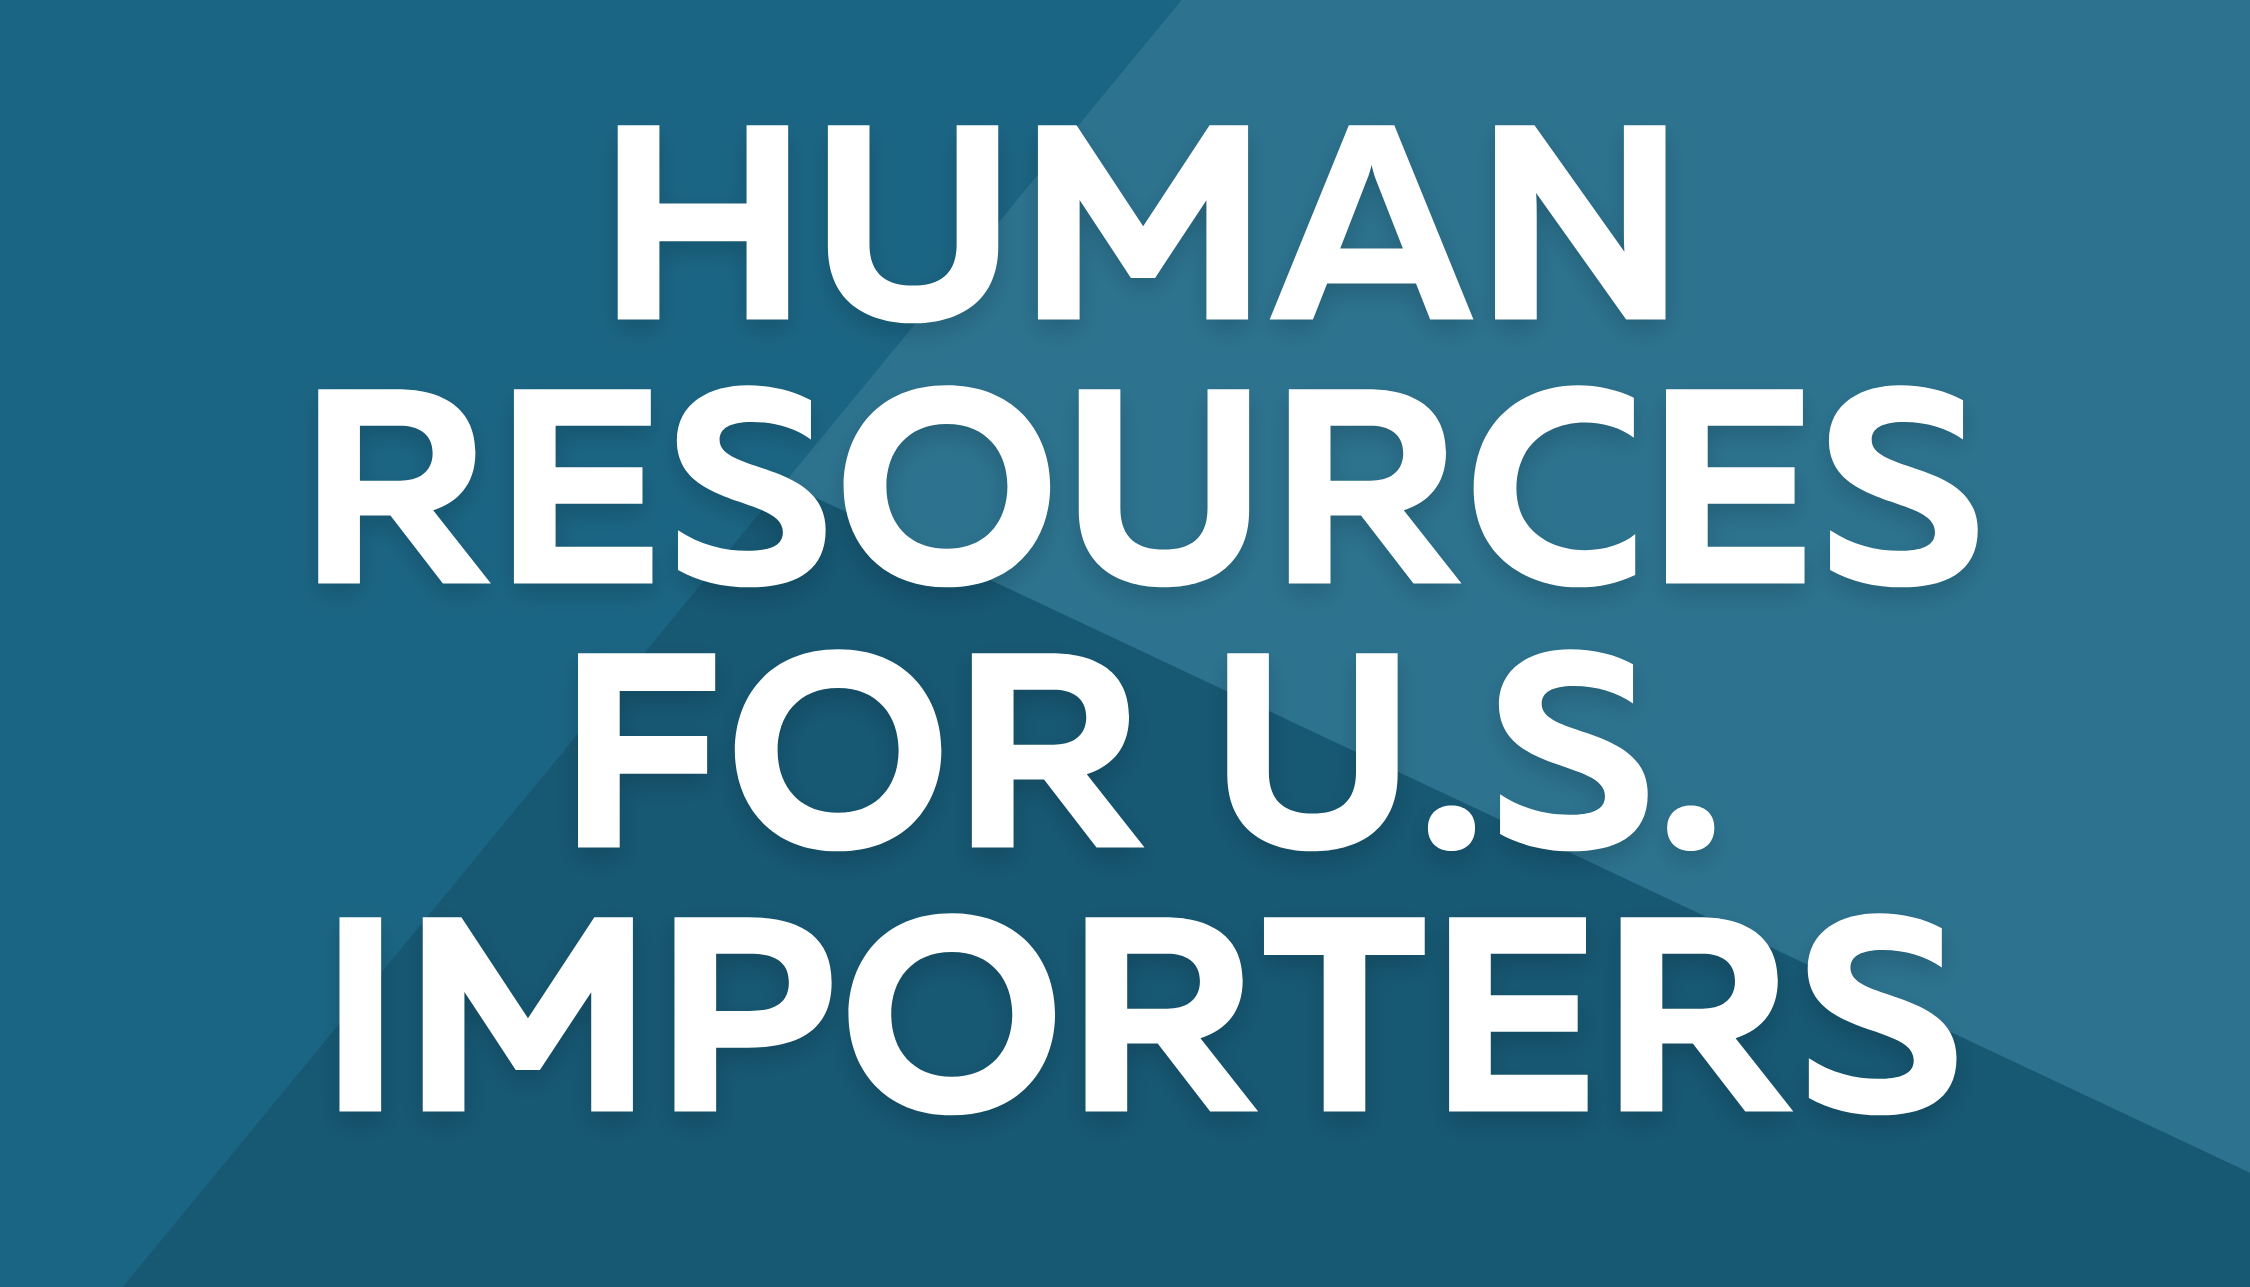 Human Resources for U.S. Importers